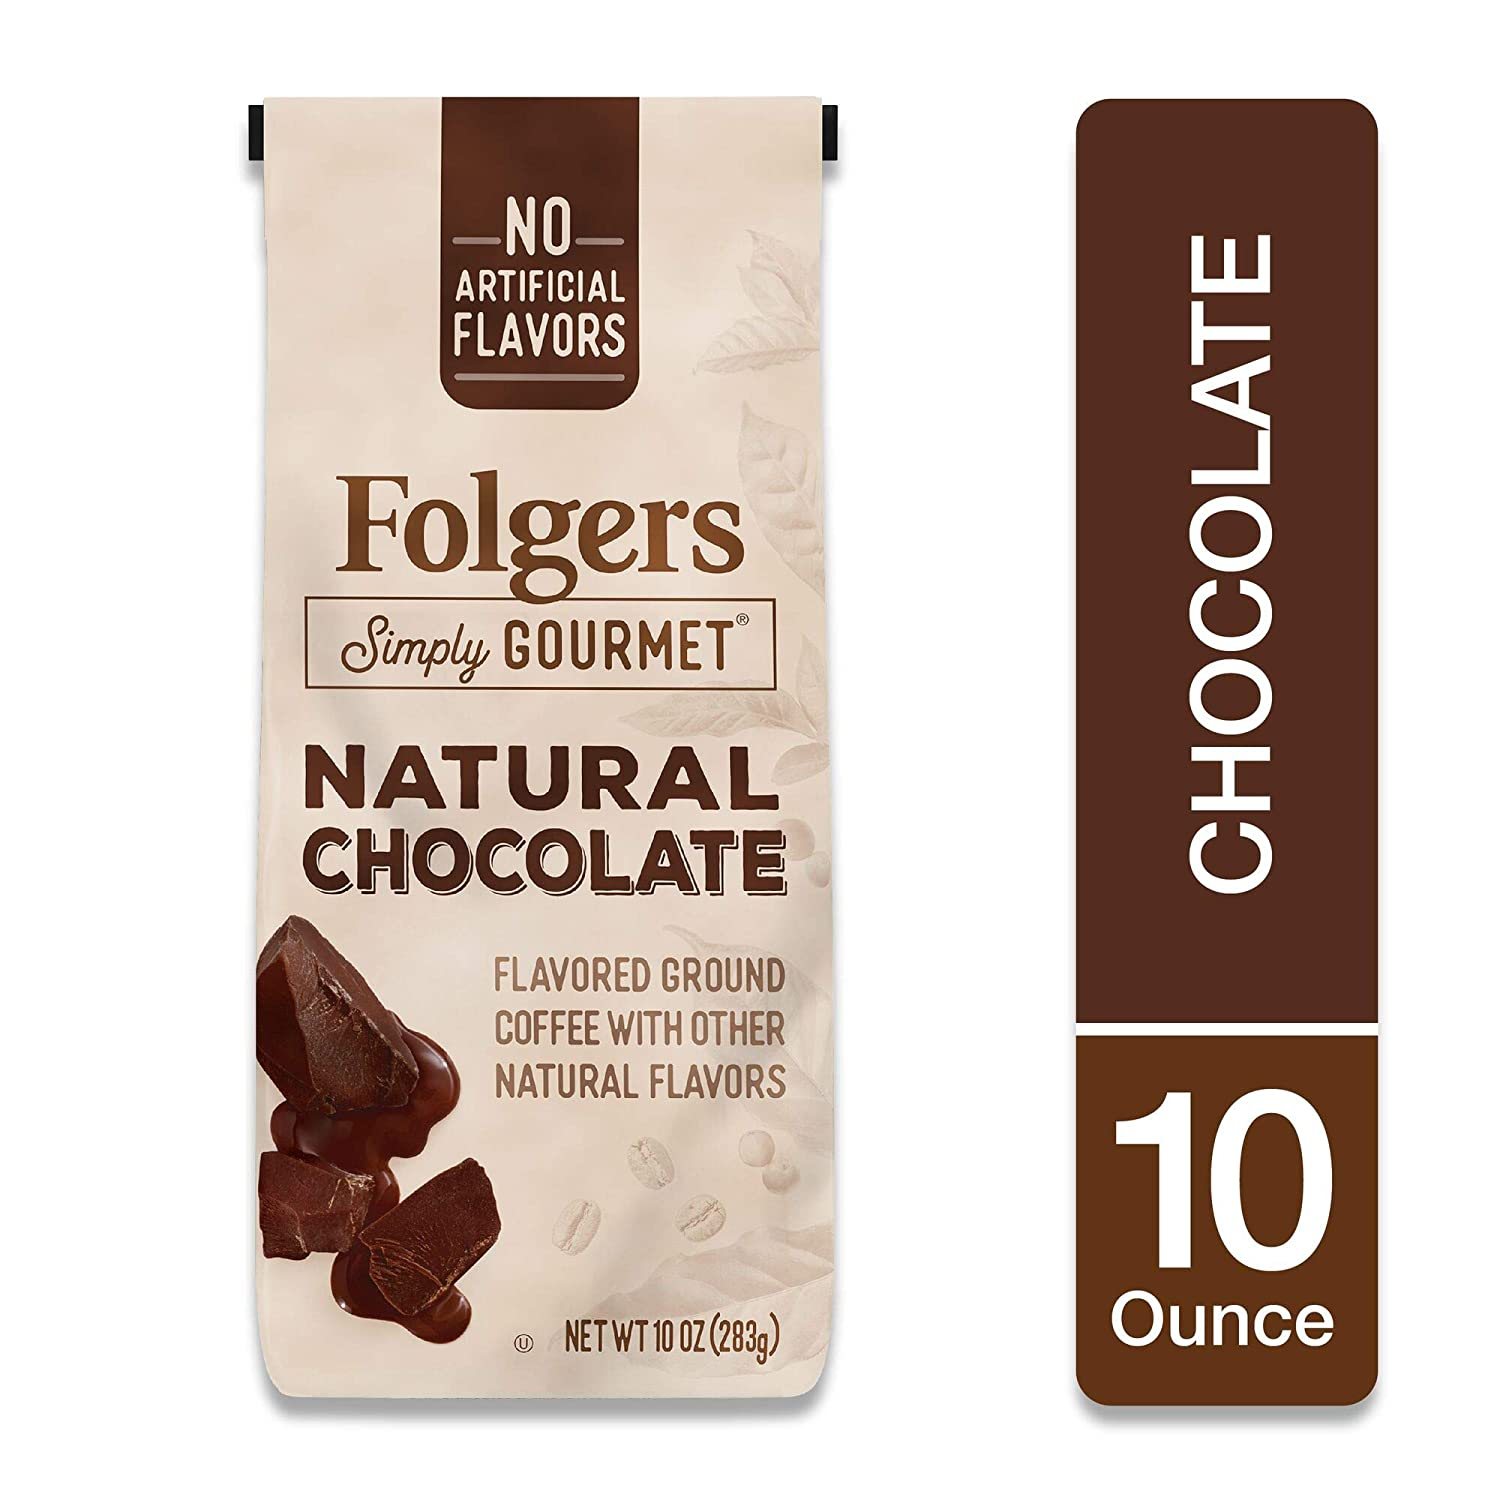 Folgers Simply Gourmet Natural Chocolate Flavored Ground Coffee, 10 Ounces